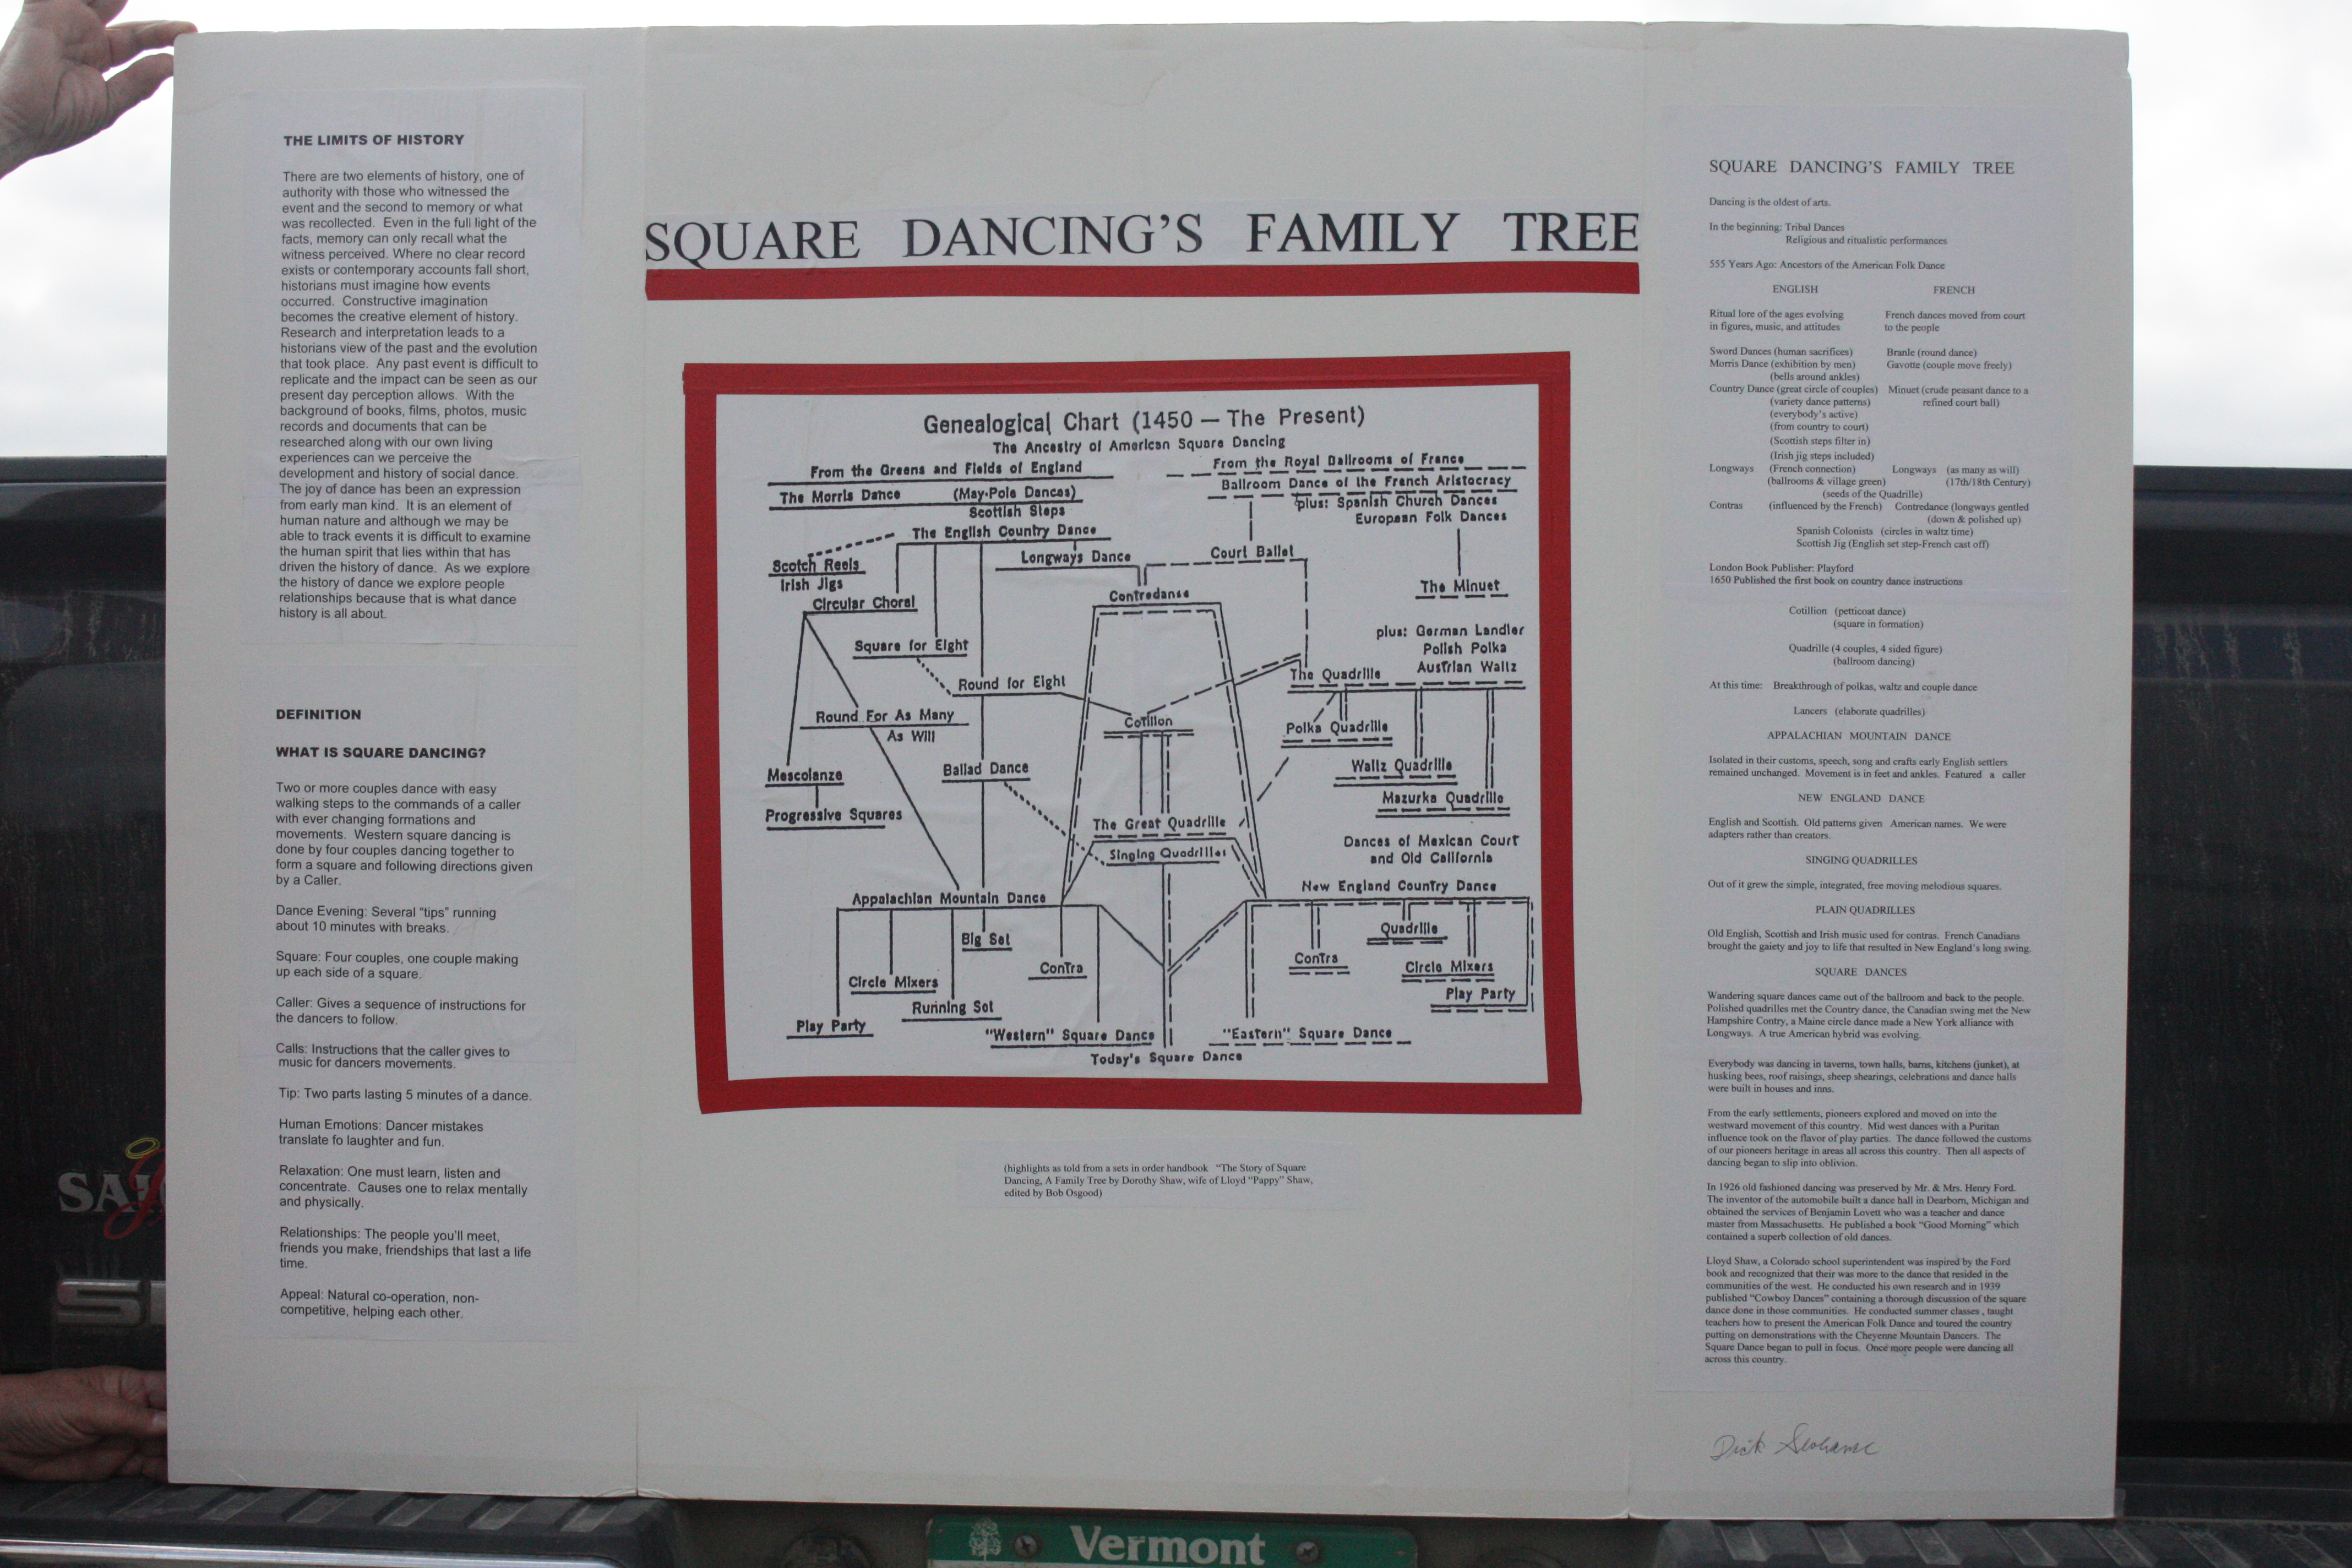 Panel #01(Square Dancing's Family Tree)